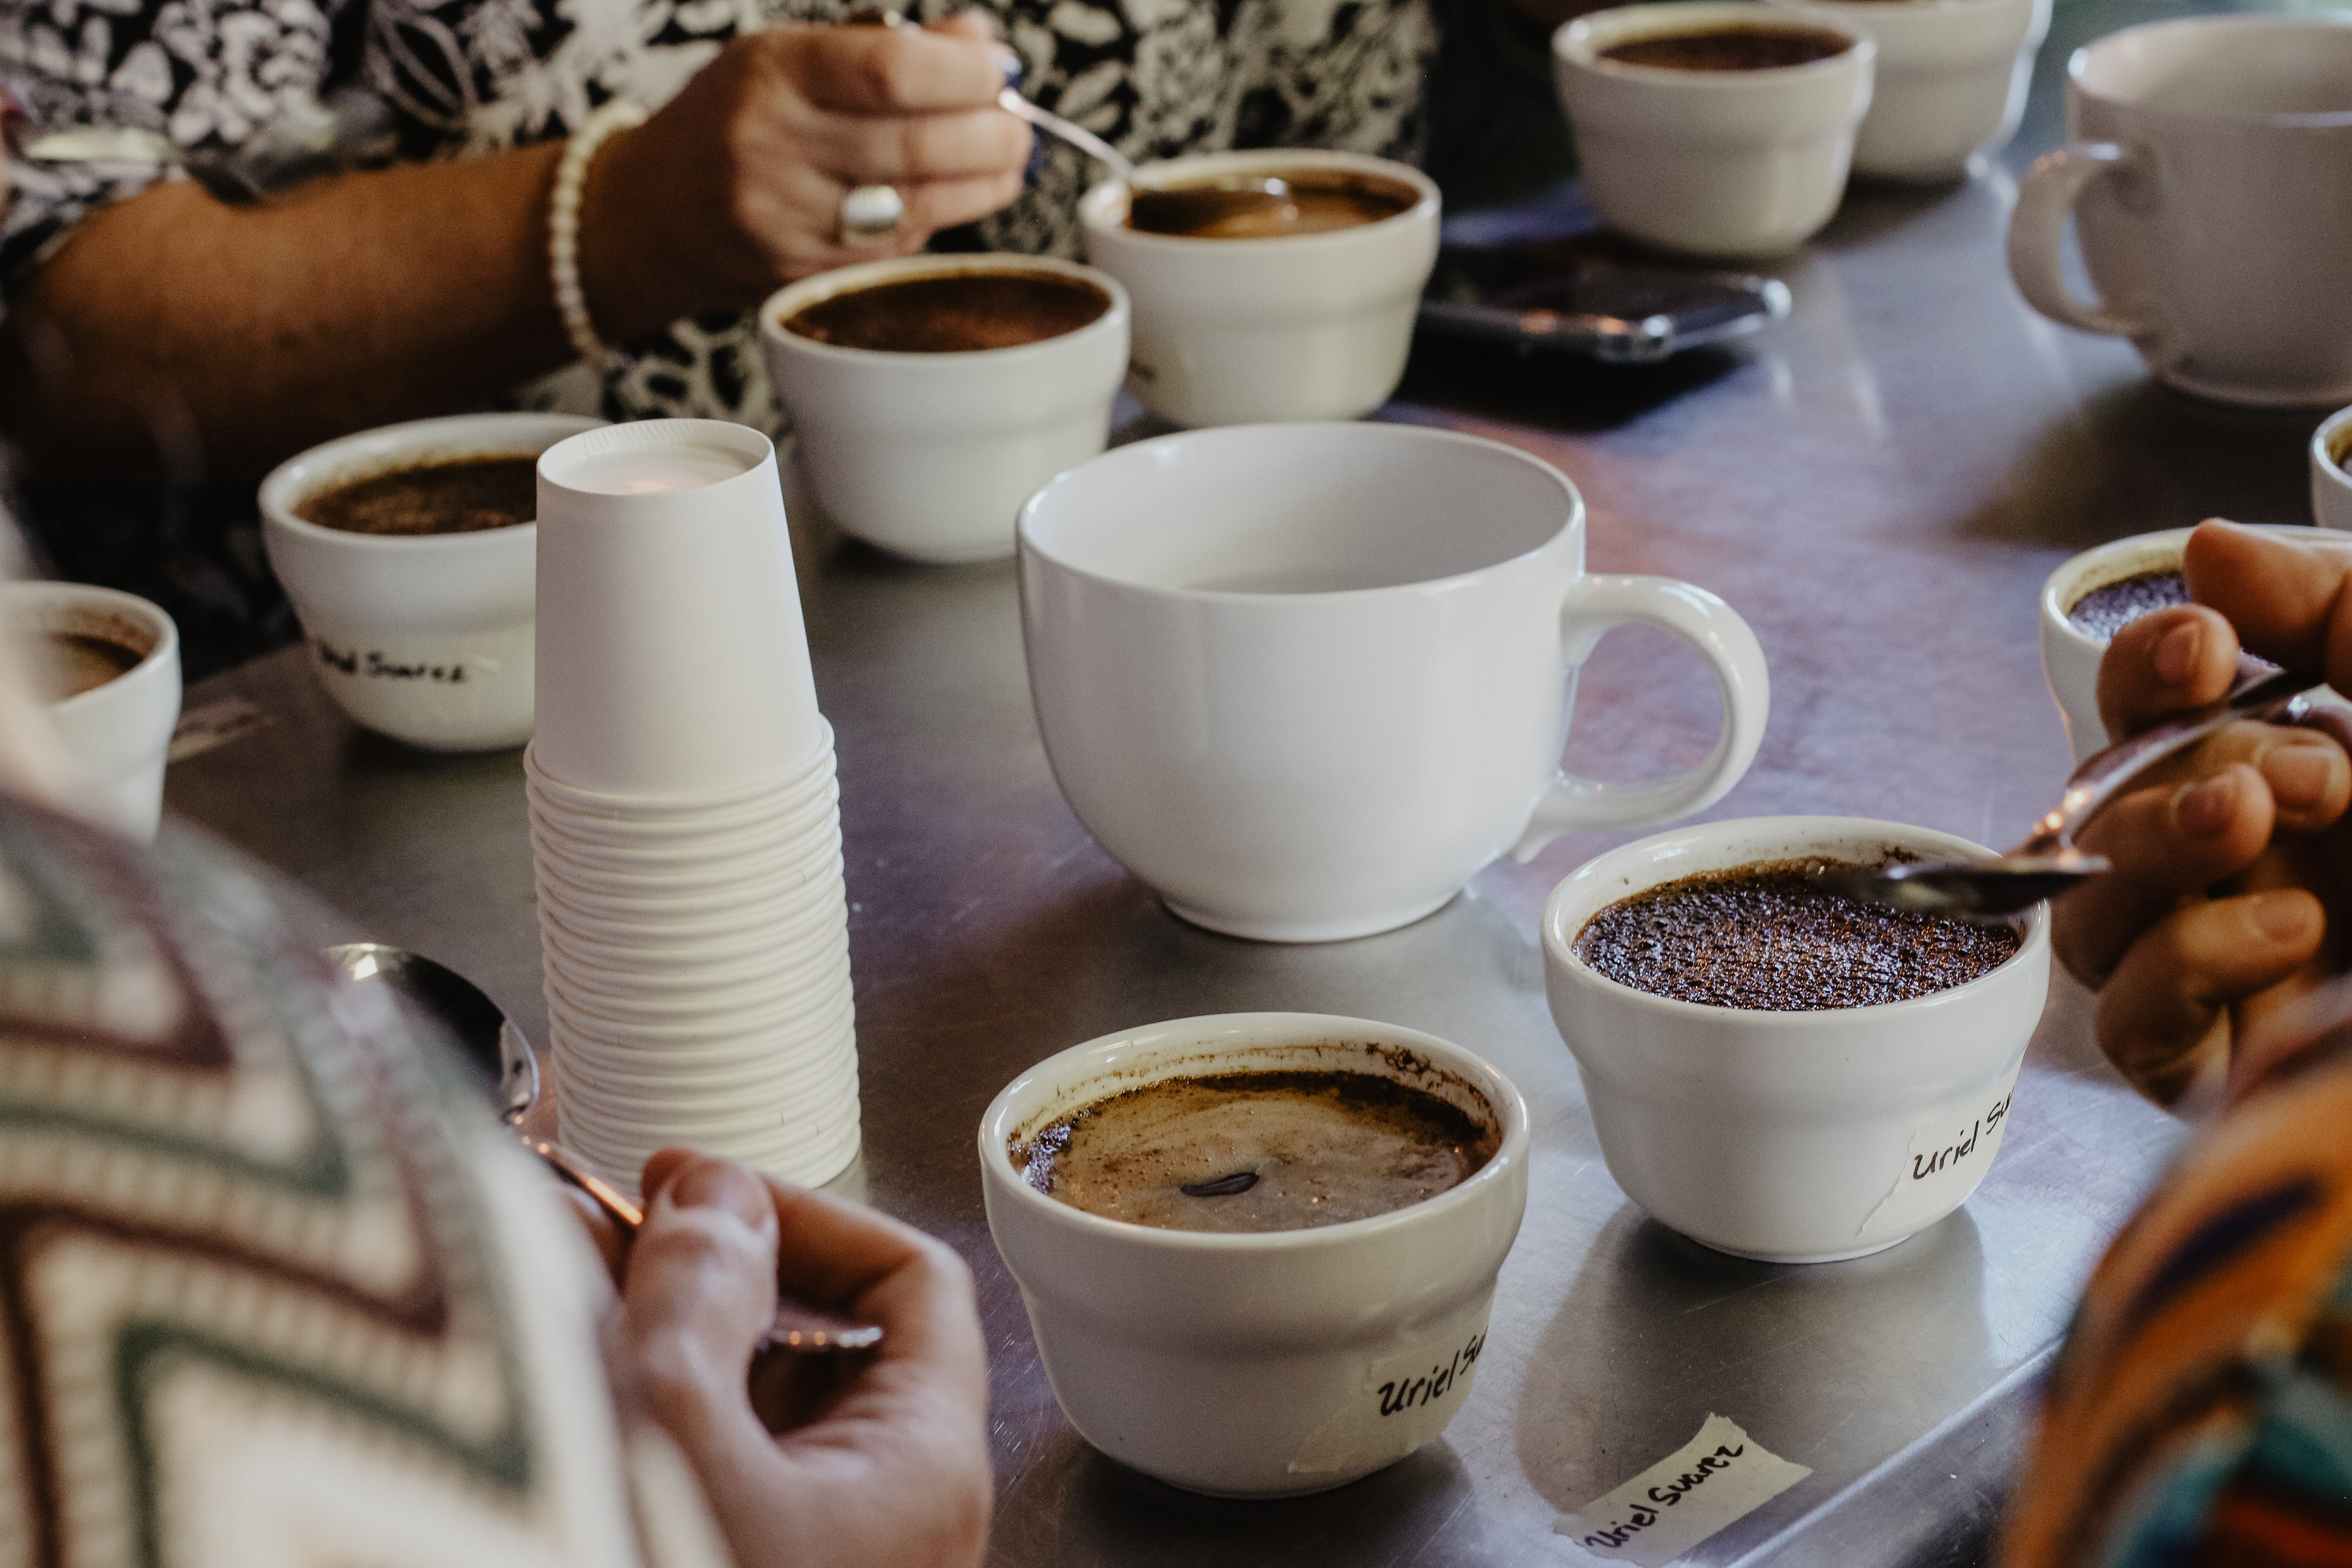 Debriefing coffee cupping